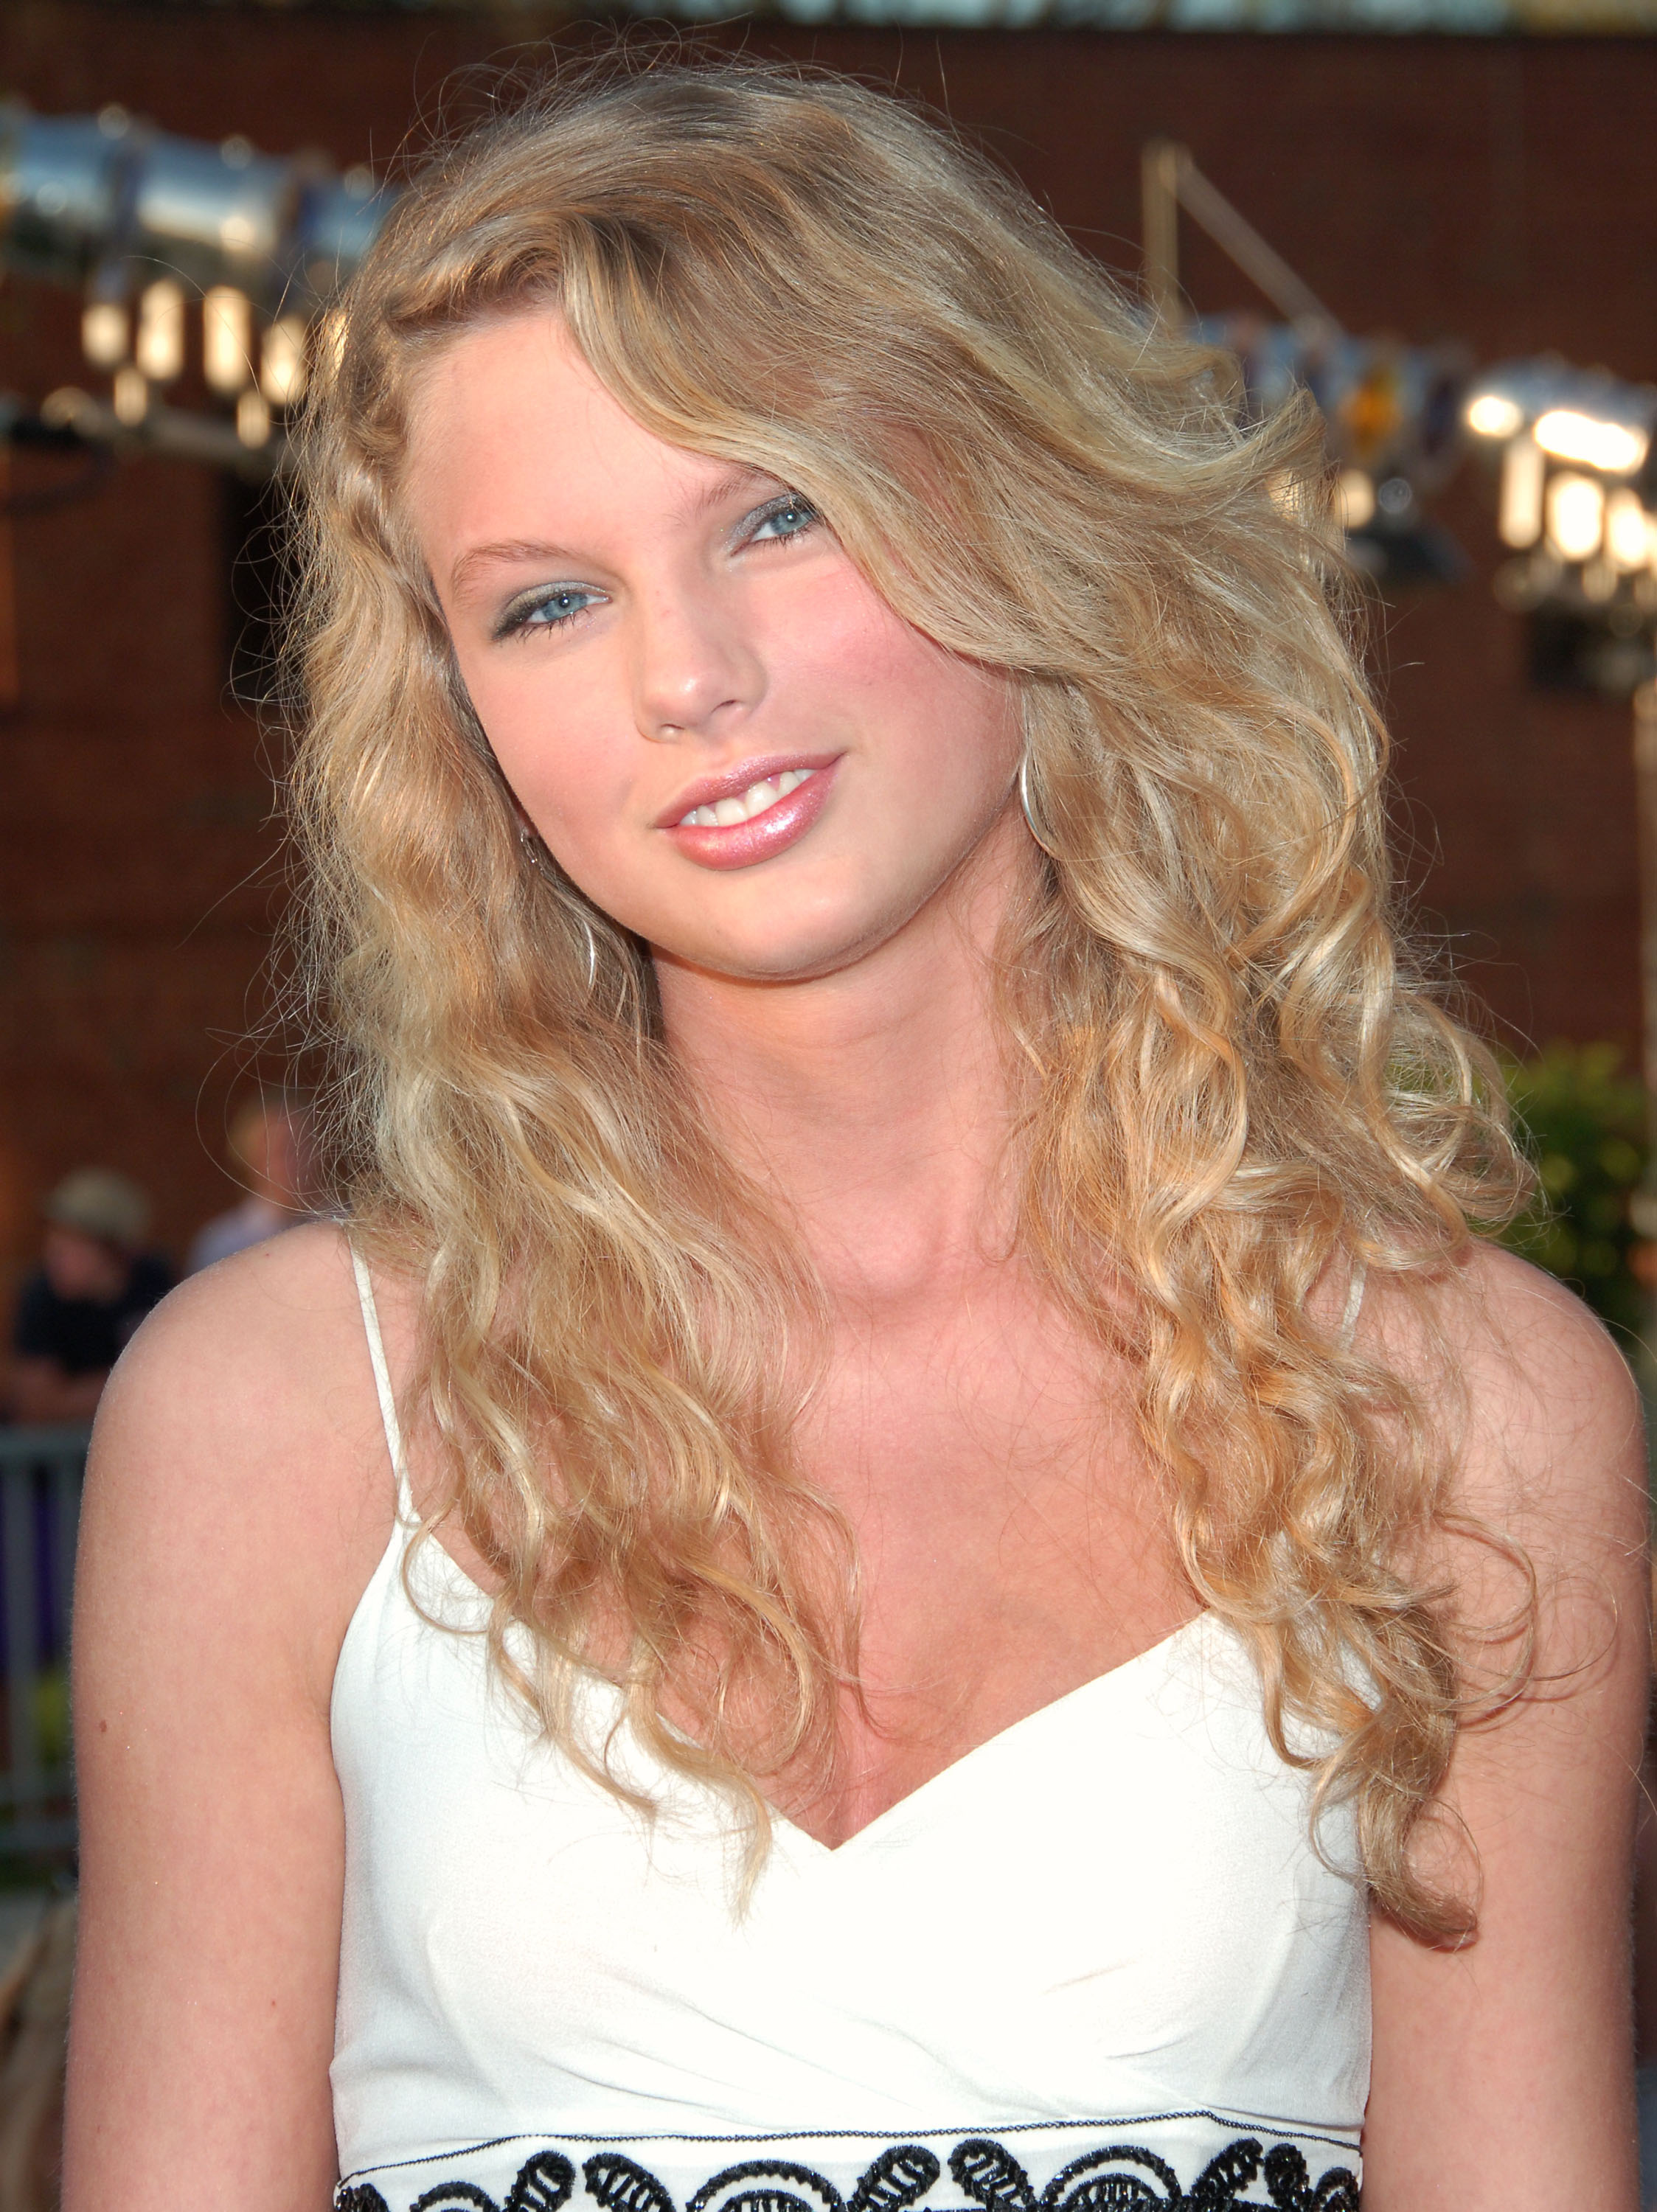 Surprising 5 Best Taylor Swift Hair Looks Taylor Swifts Signature Hairstyles Hairstyles For Women Draintrainus